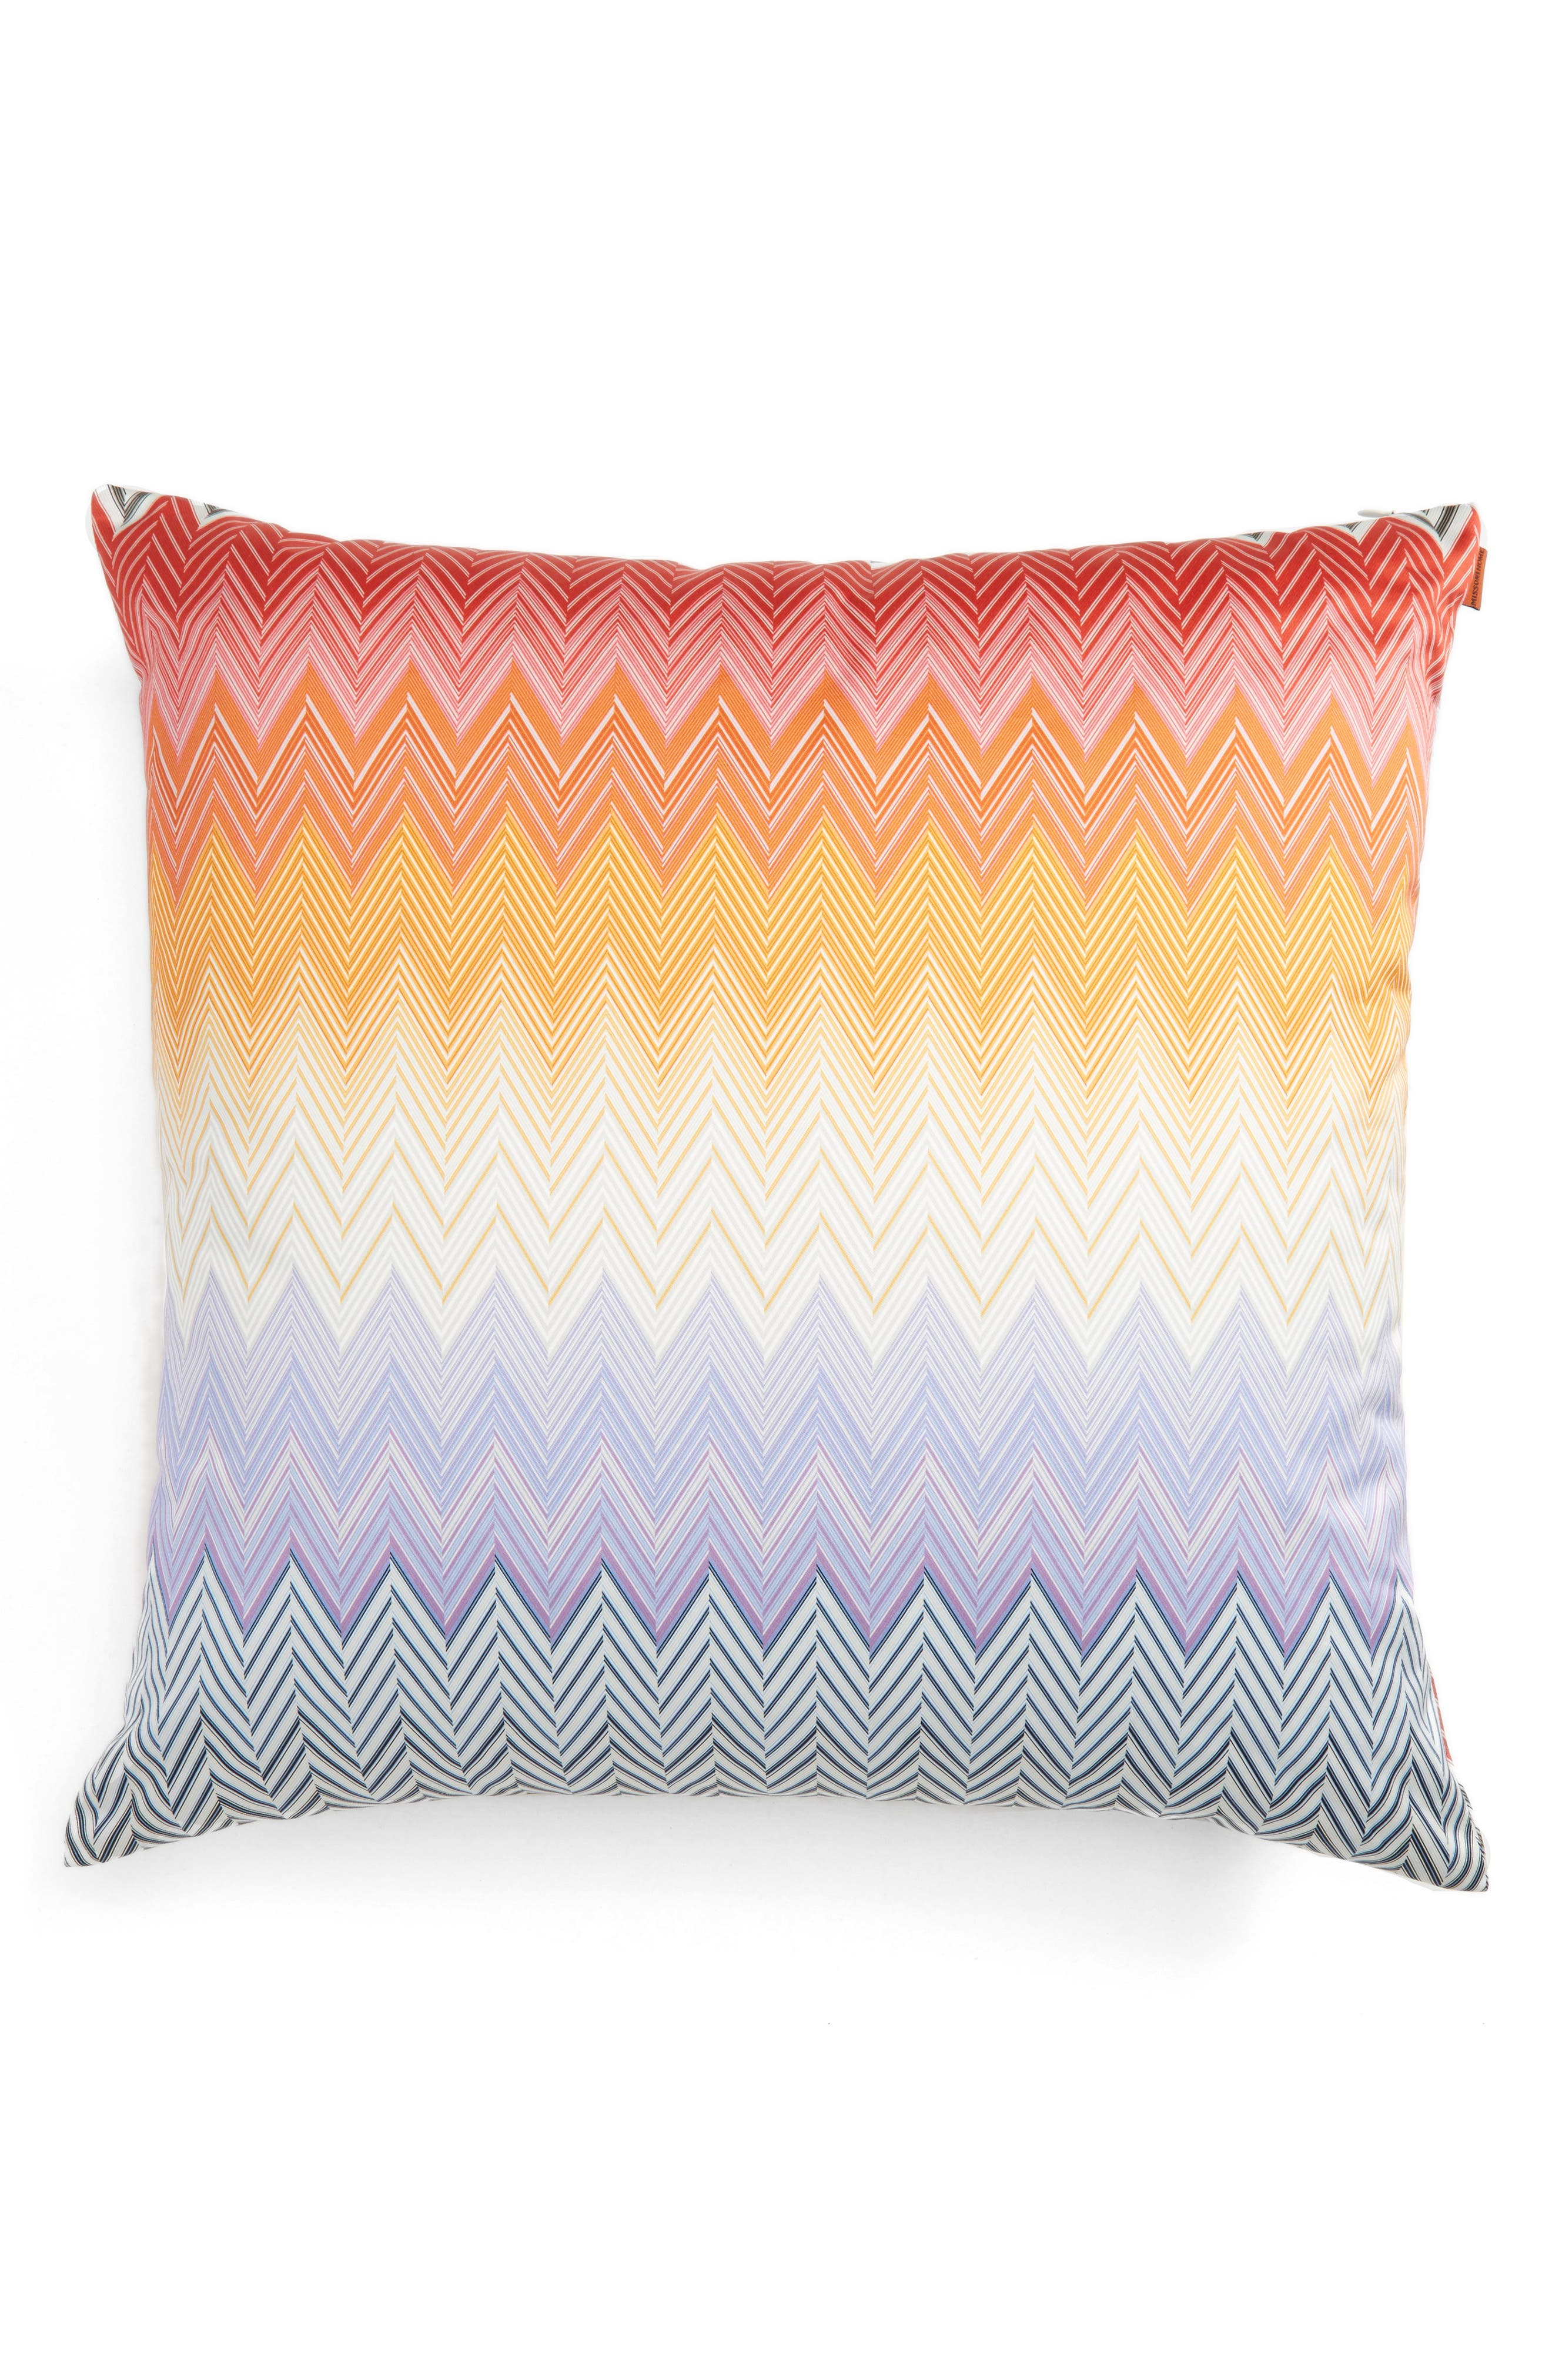 Sabaudia Accent Pillow,                             Alternate thumbnail 2, color,                             600